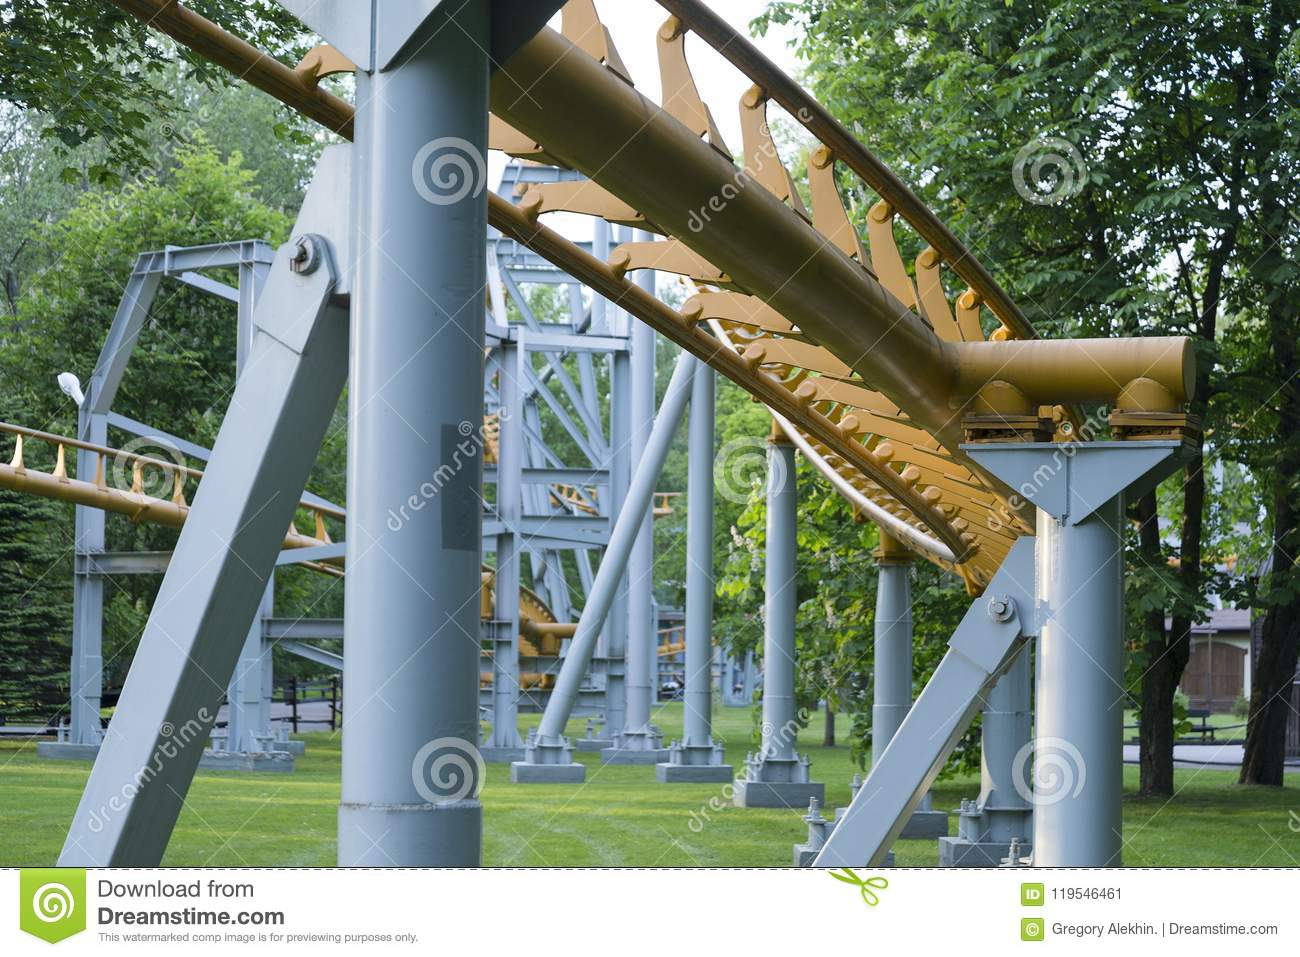 The supporting structure of the roller coaster.